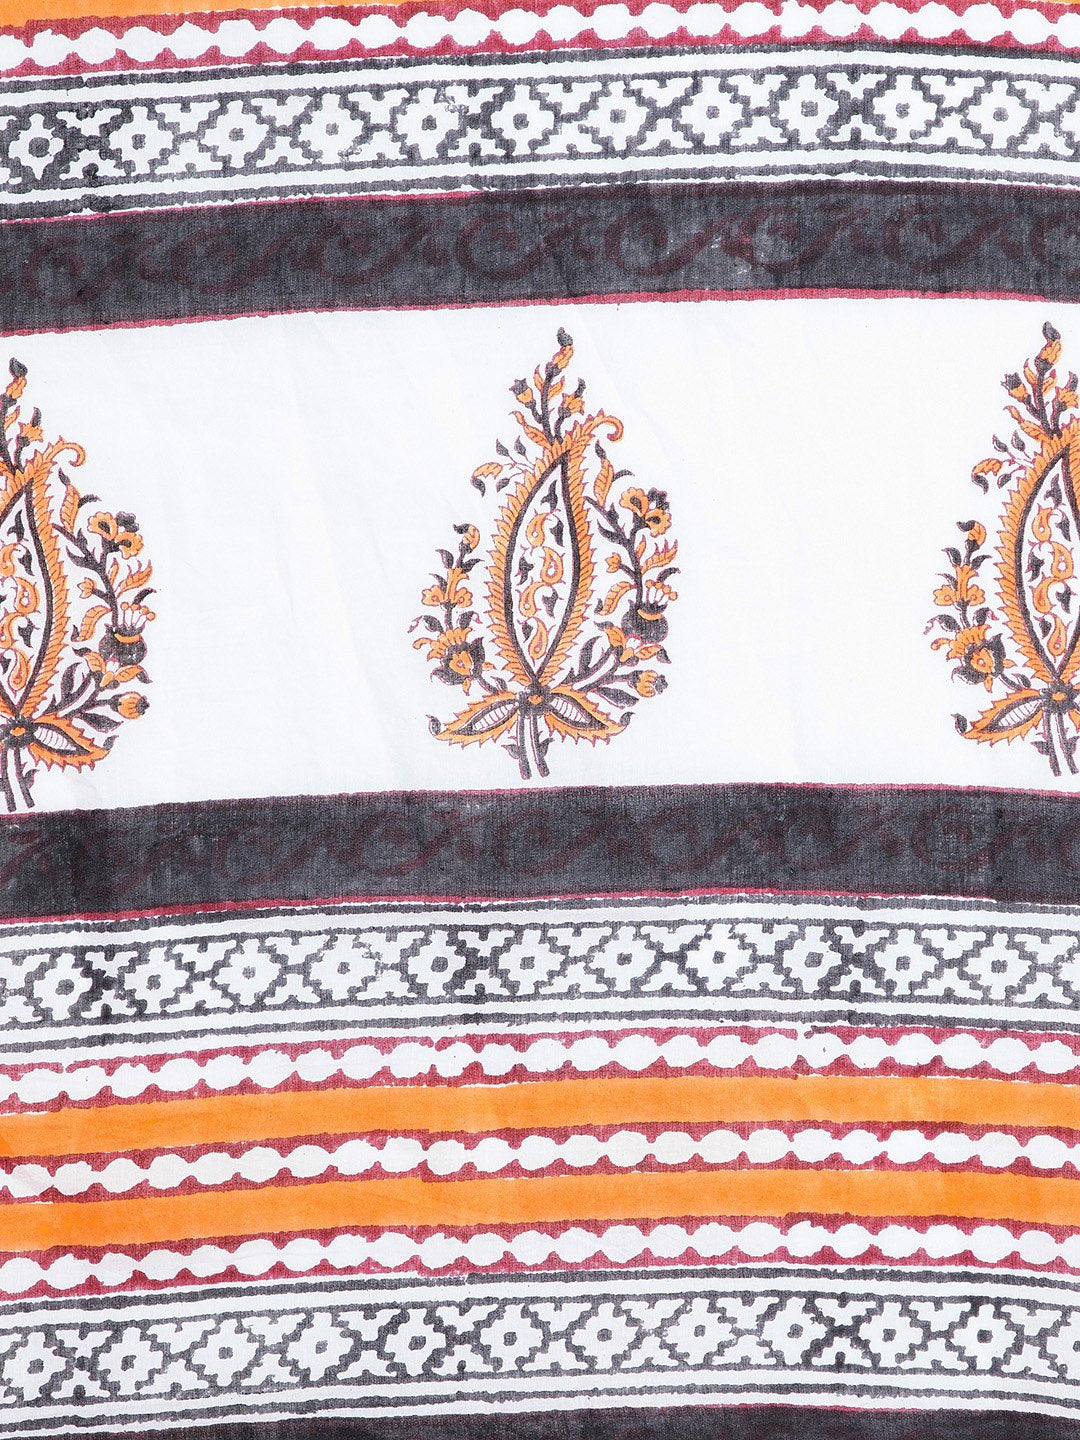 White & Orange Mughal Hand Block Print Handcrafted Cotton Saree-Saree-Kalakari India-BHKPSA0018-Cotton, Geographical Indication, Hand Blocks, Hand Crafted, Heritage Prints, Sanganeri, Sarees, Sustainable Fabrics-[Linen,Ethnic,wear,Fashionista,Handloom,Handicraft,Indigo,blockprint,block,print,Cotton,Chanderi,Blue, latest,classy,party,bollywood,trendy,summer,style,traditional,formal,elegant,unique,style,hand,block,print, dabu,booti,gift,present,glamorous,affordable,collectible,Sari,Saree,printed,